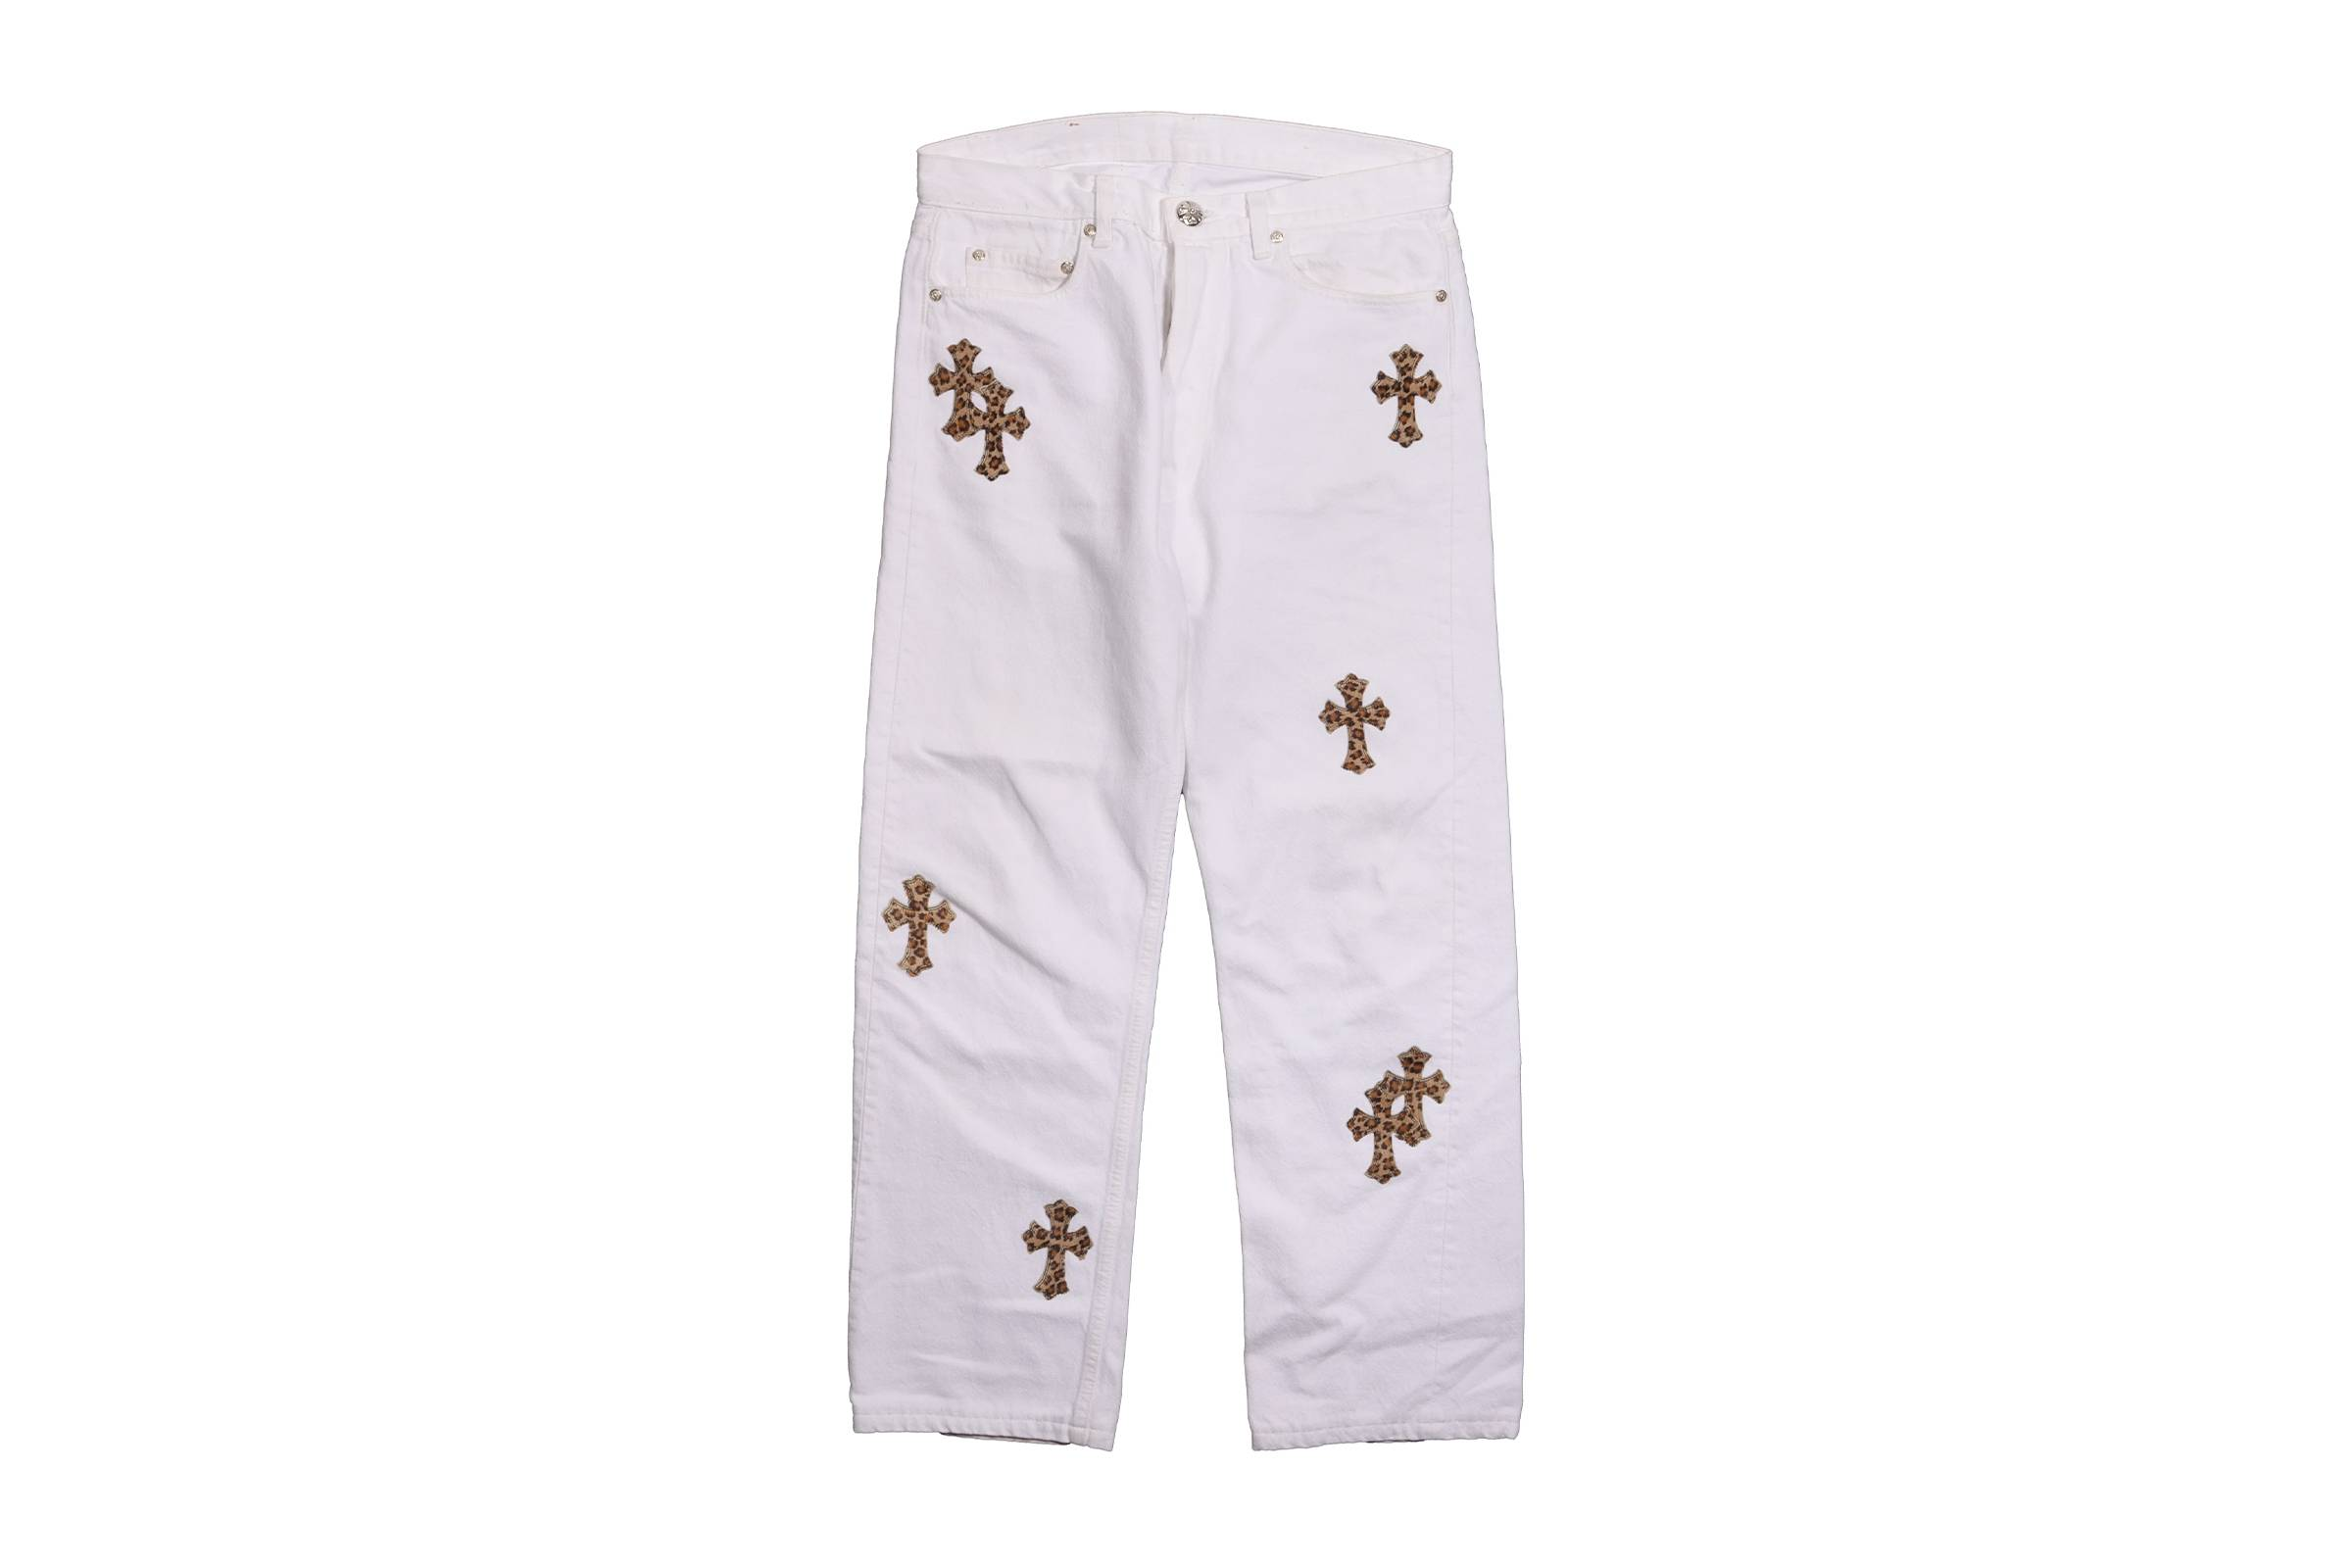 Chrome Hearts x Levi's Leopard Cross Patchwork Denim